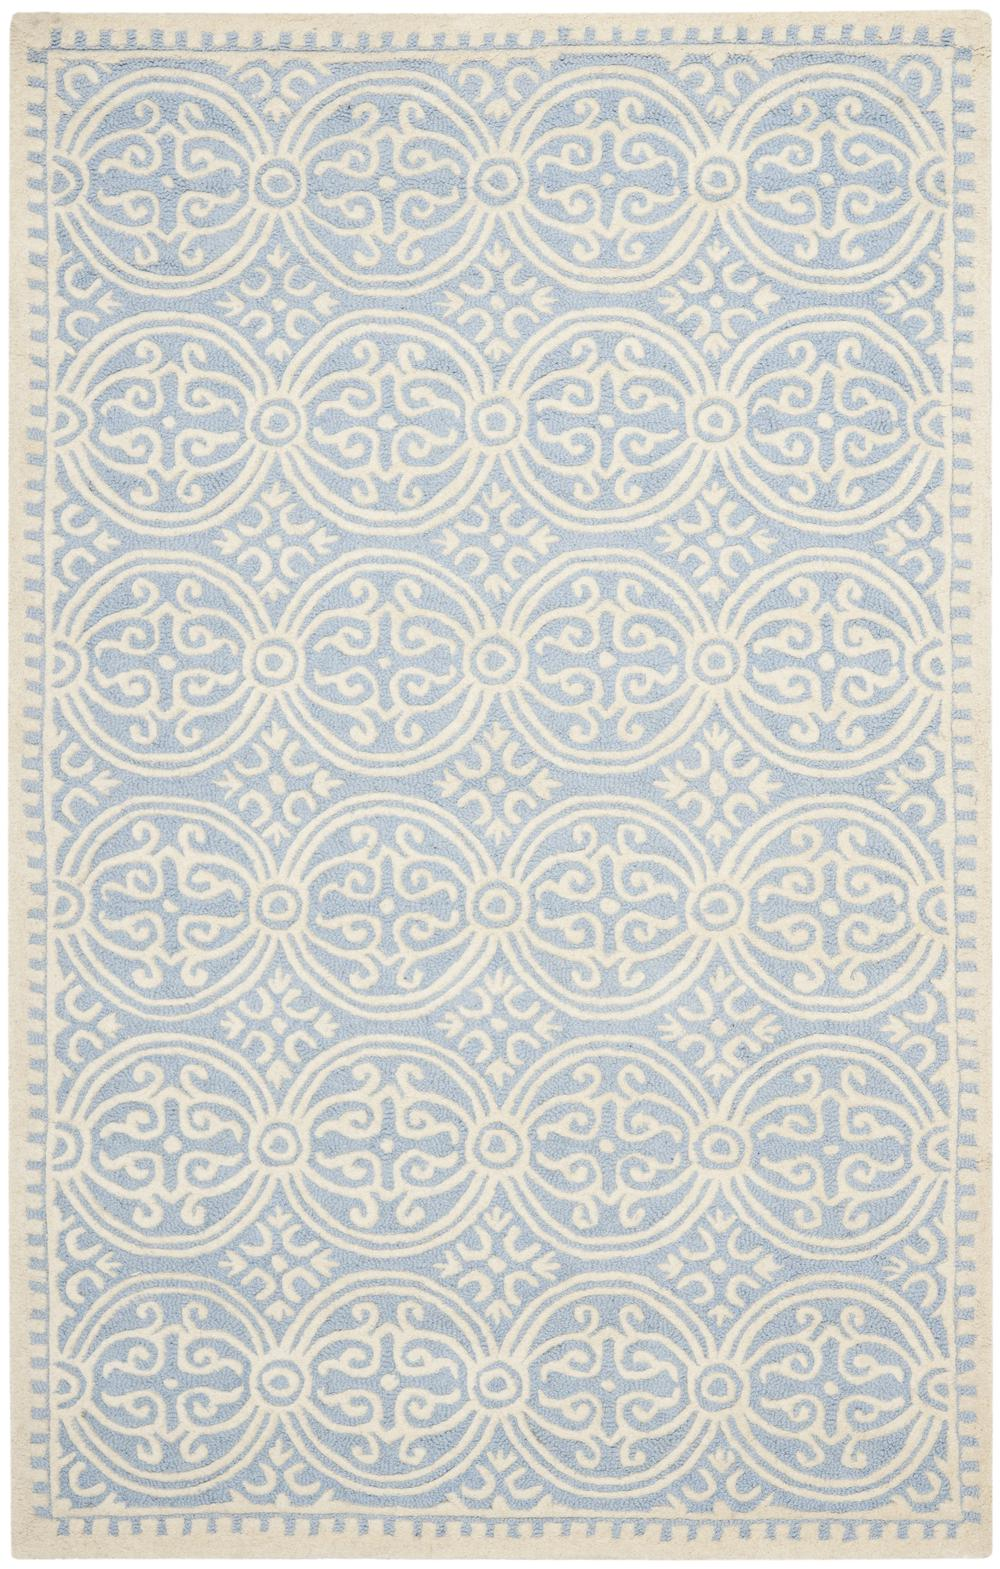 Safavieh Cambridge Cam123a Light Blue And Ivory Area Rug